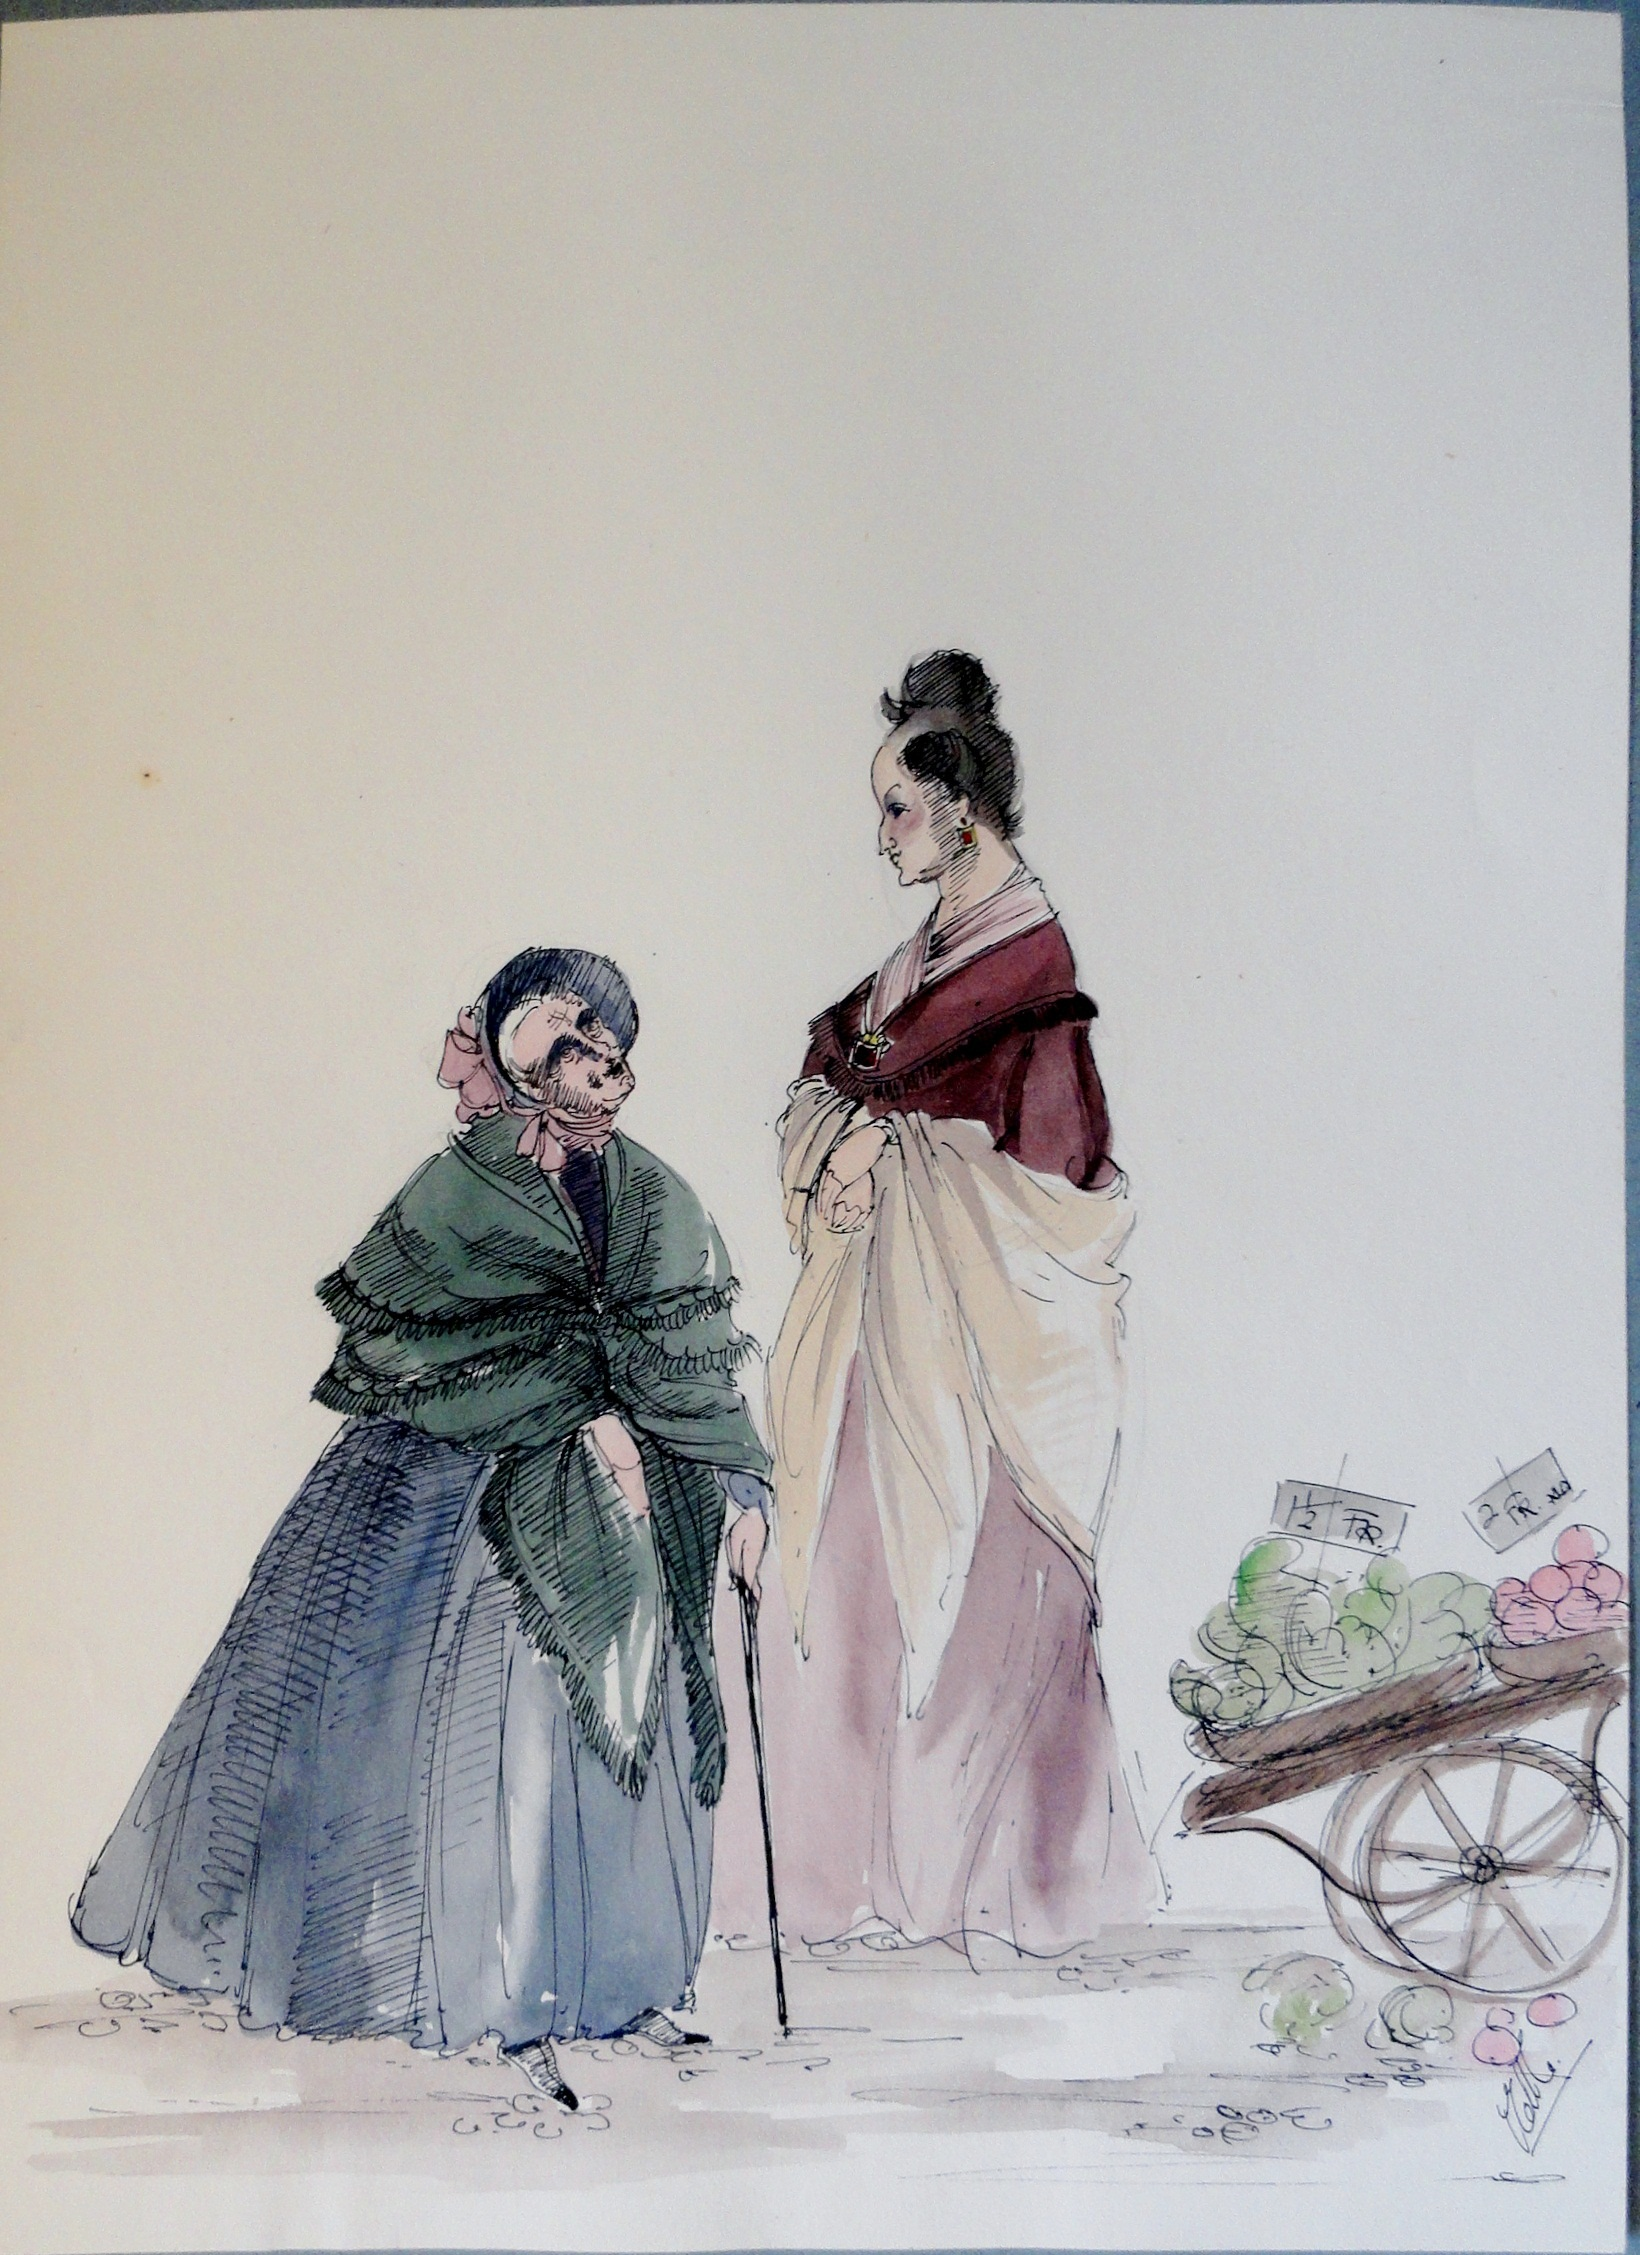 Two gossiping old women from RACHEL. Pen and ink and watercolor. Signed.  From the Rachel Portfolio by Owen Hyde Clark. $100.00